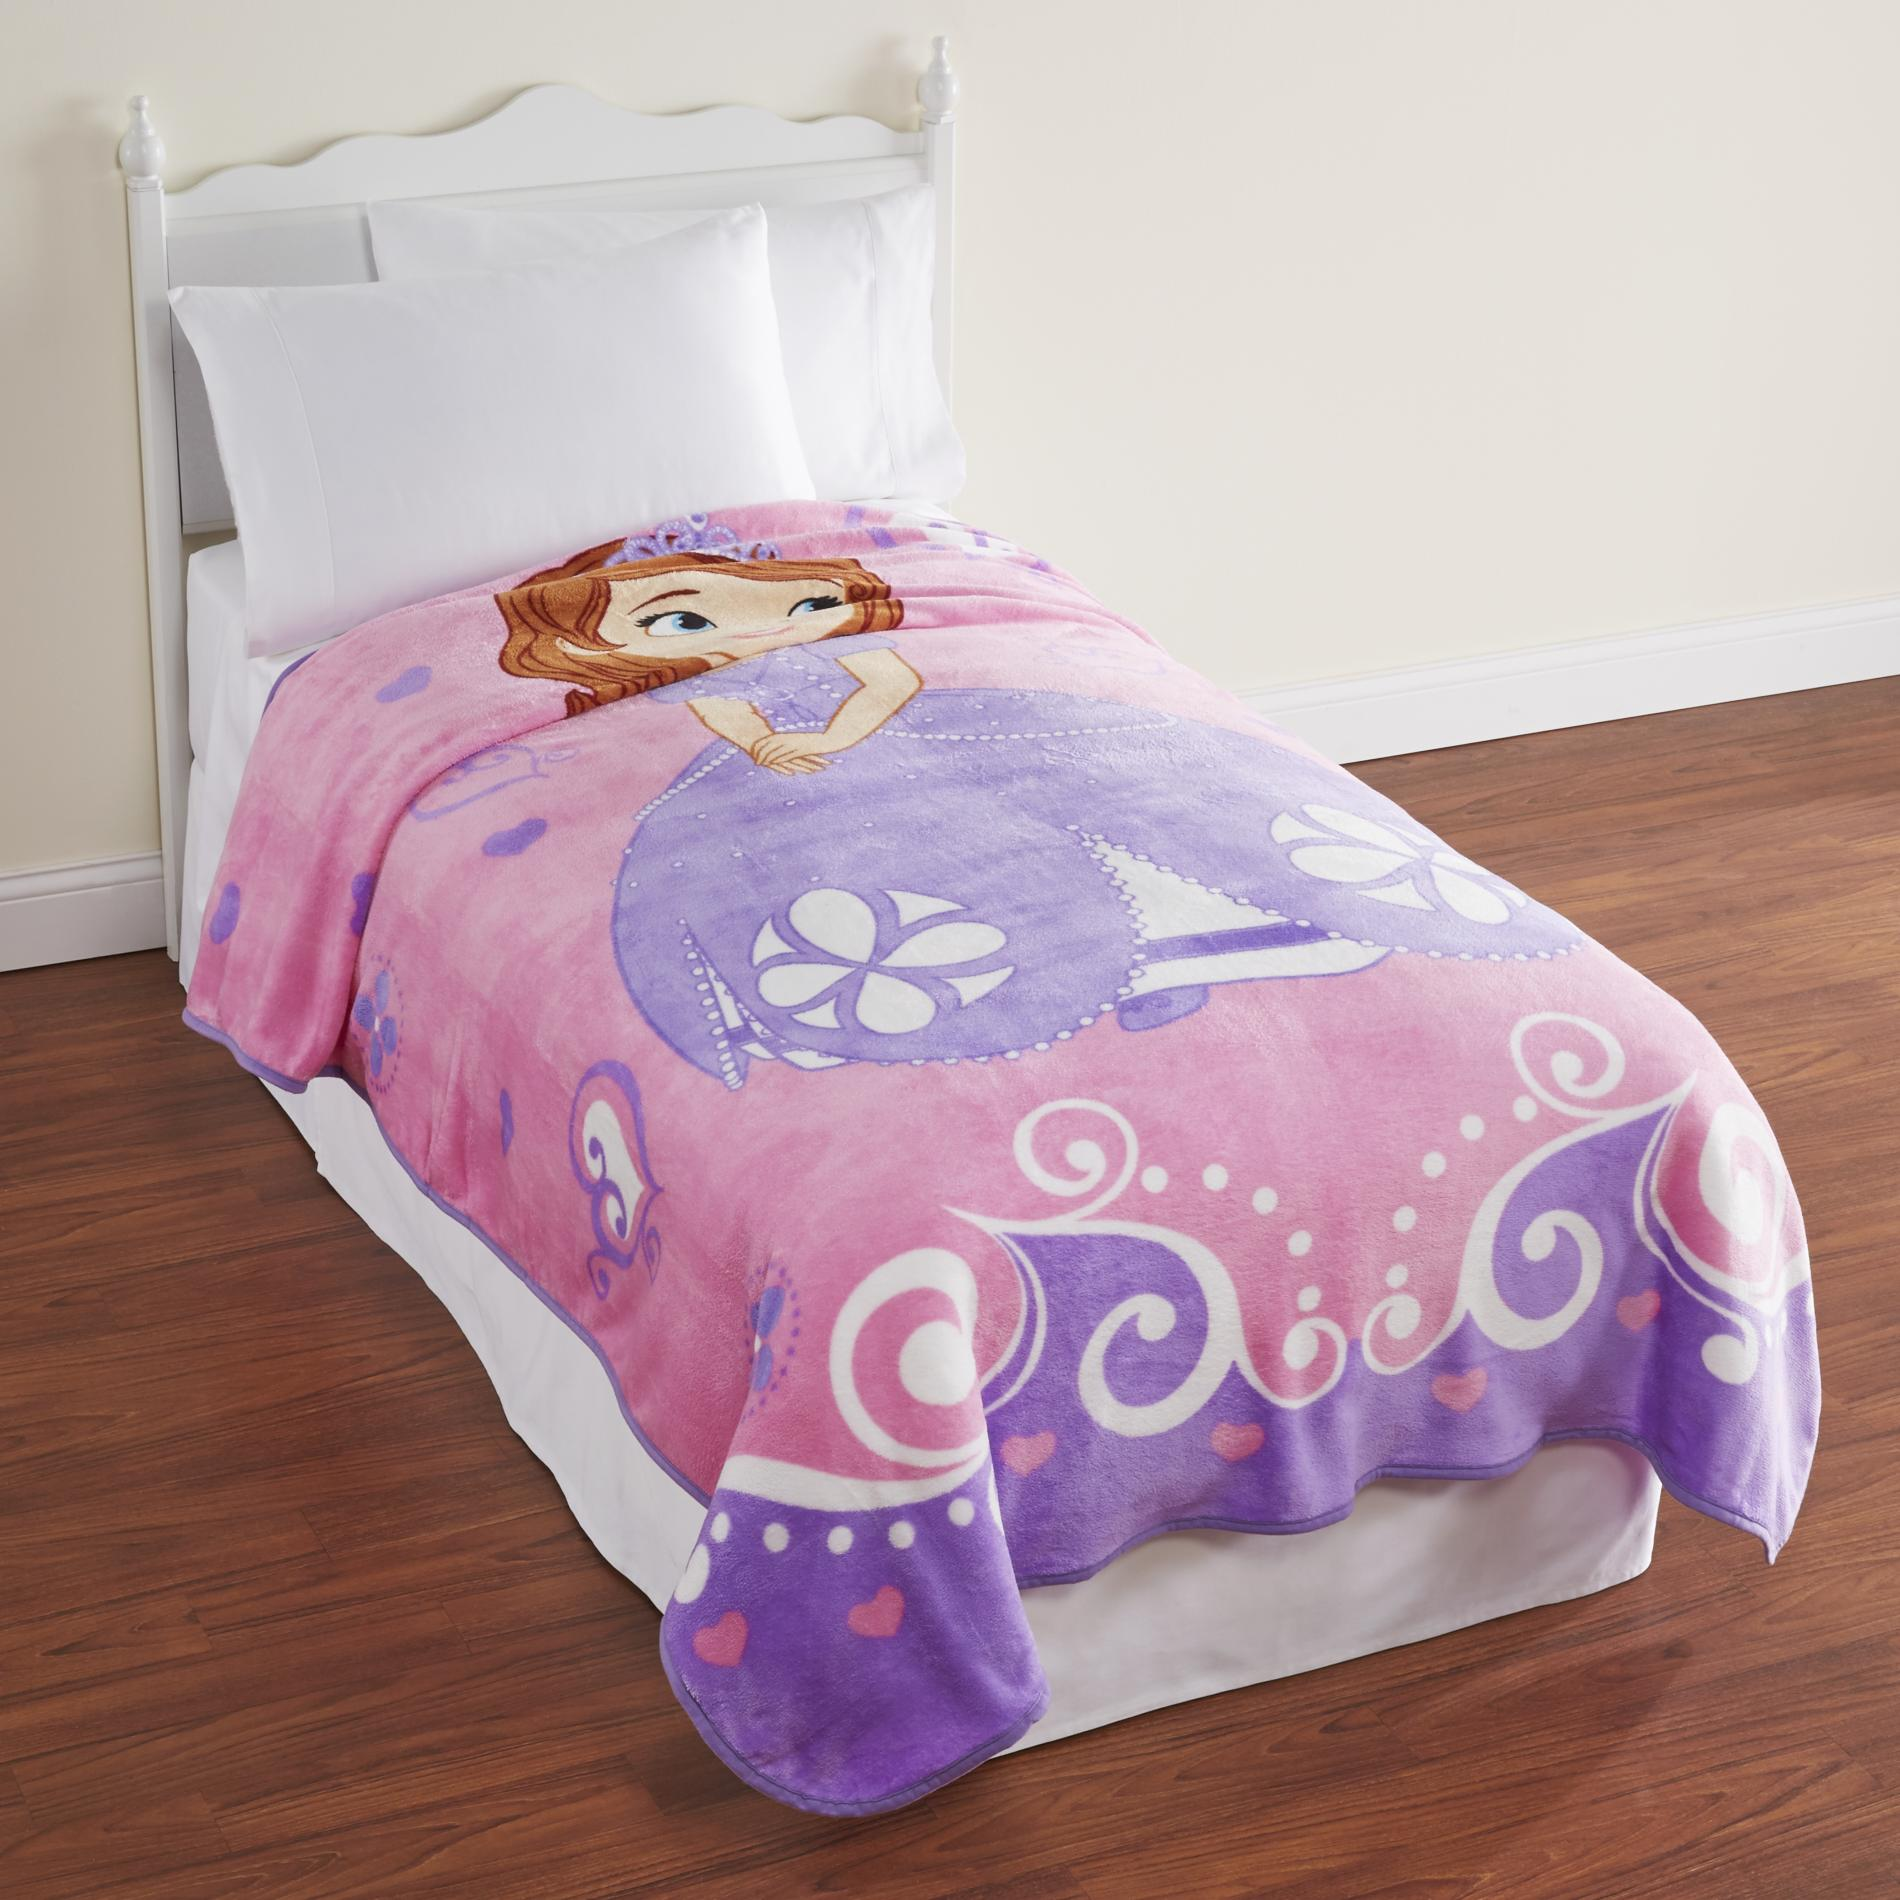 girls 39 sofia the first plush blanket home bed bath bedding